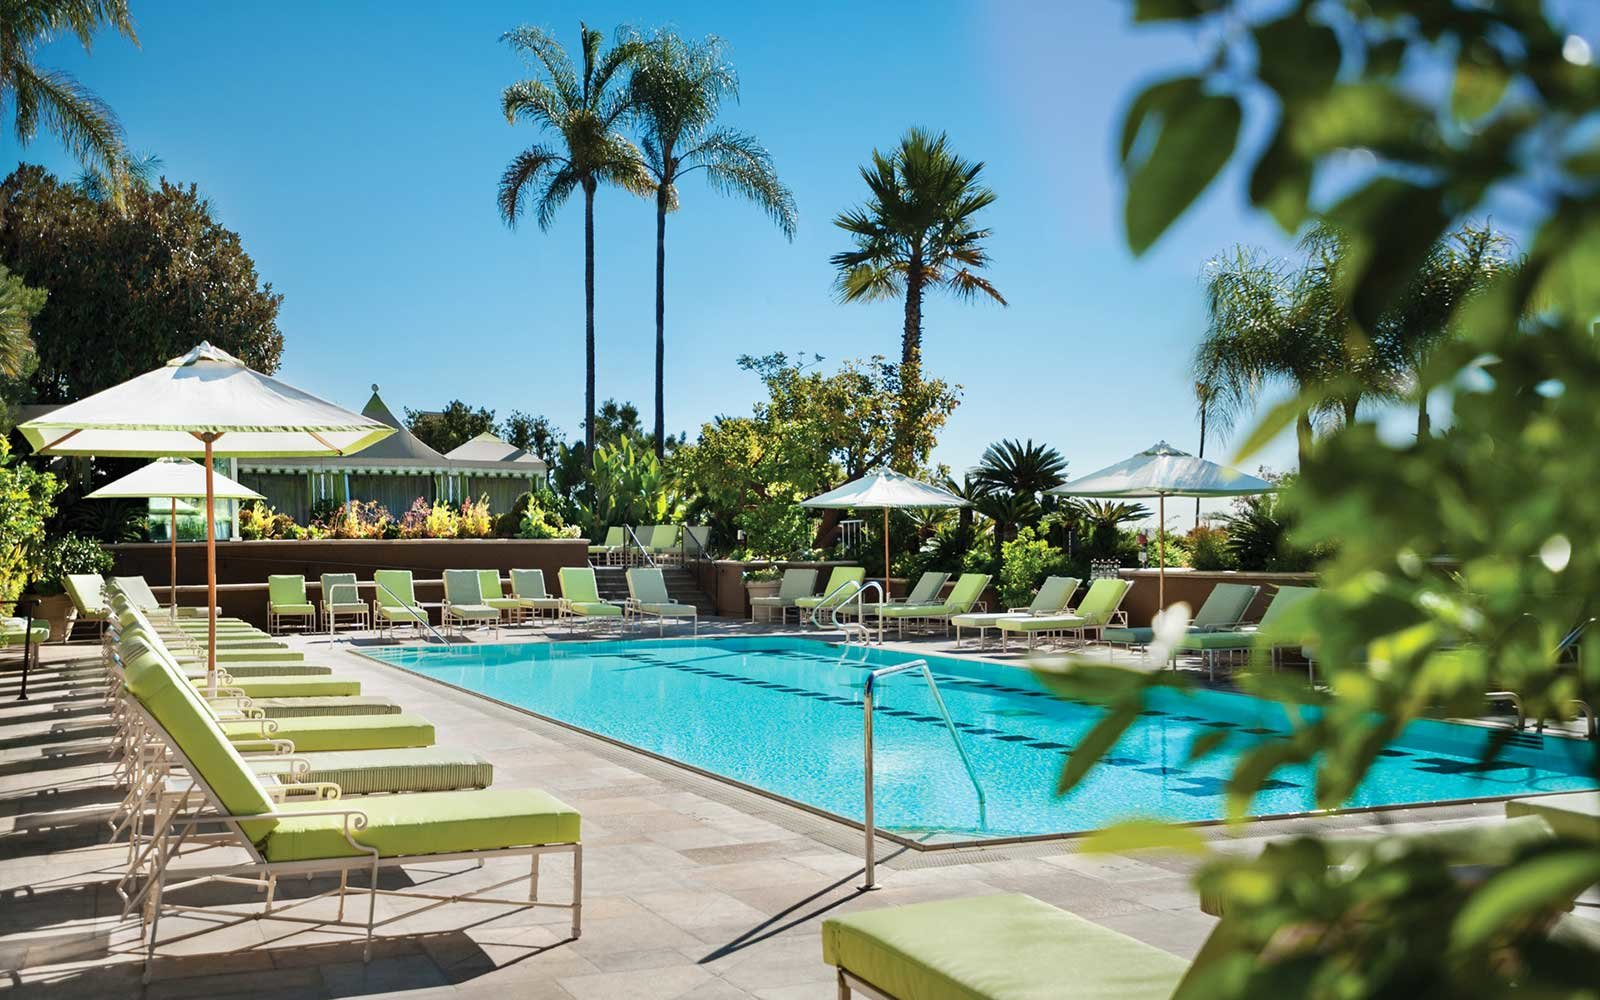 Four Seasons Los Angeles at Beverly Hills Hotel